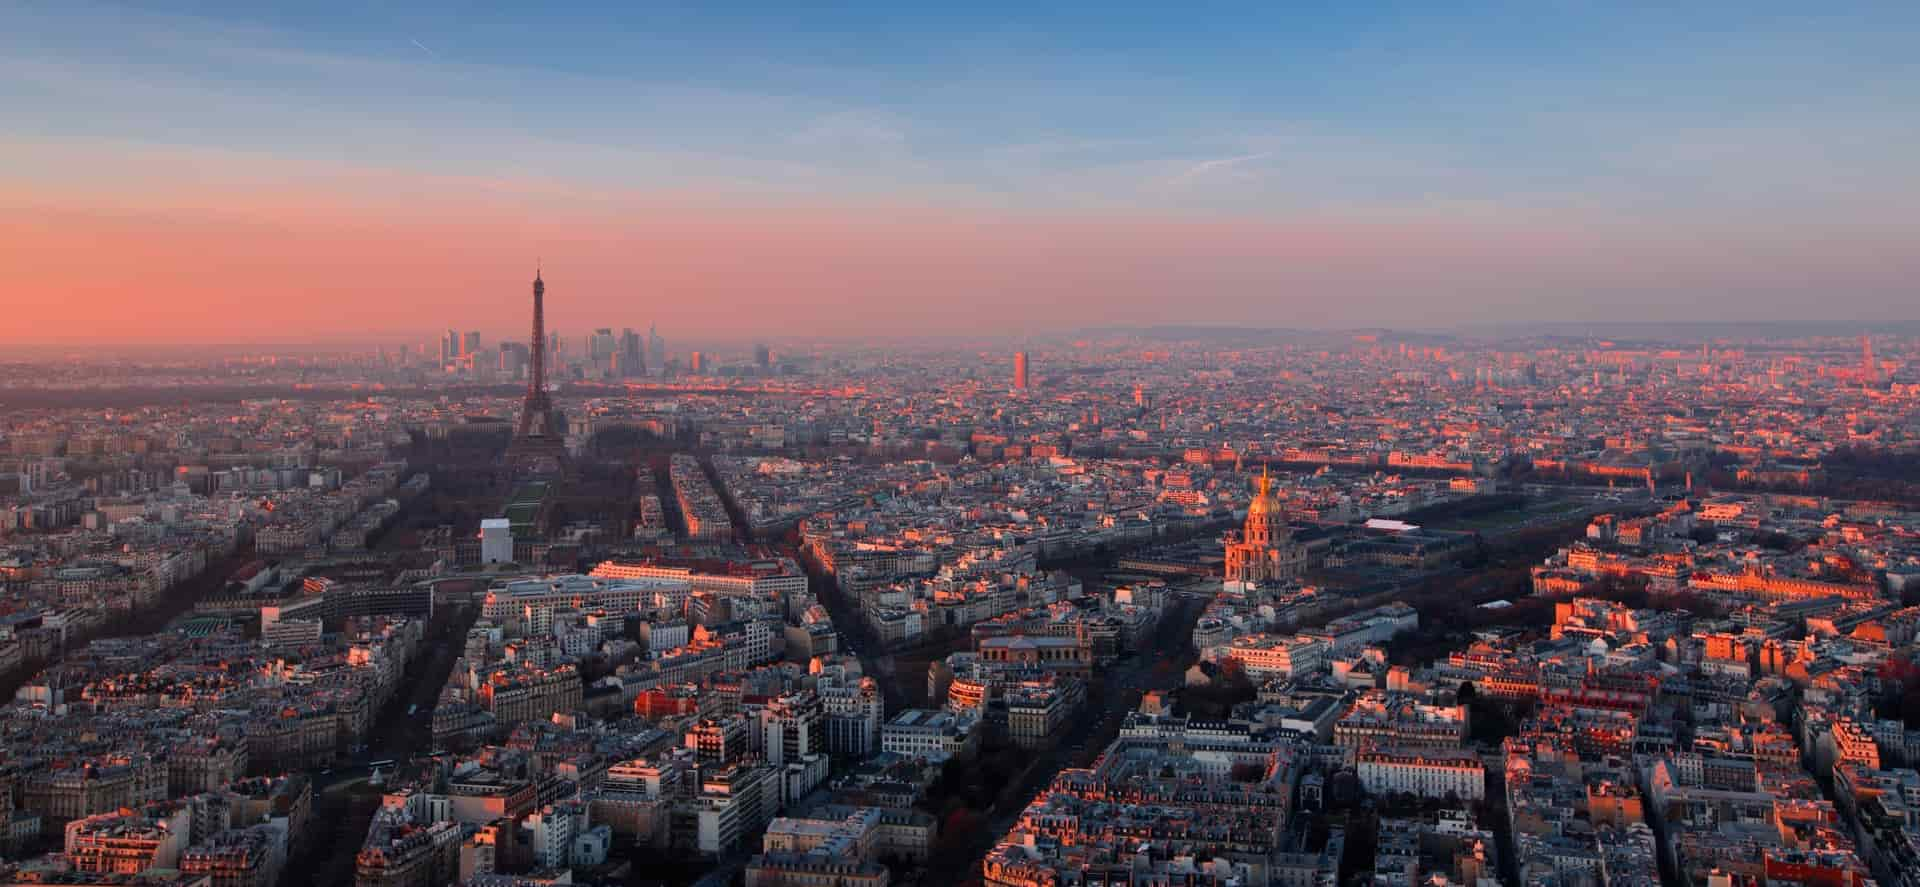 Best Airbnbs in Paris: Find and Book All the Hidden Gems! [Guide]